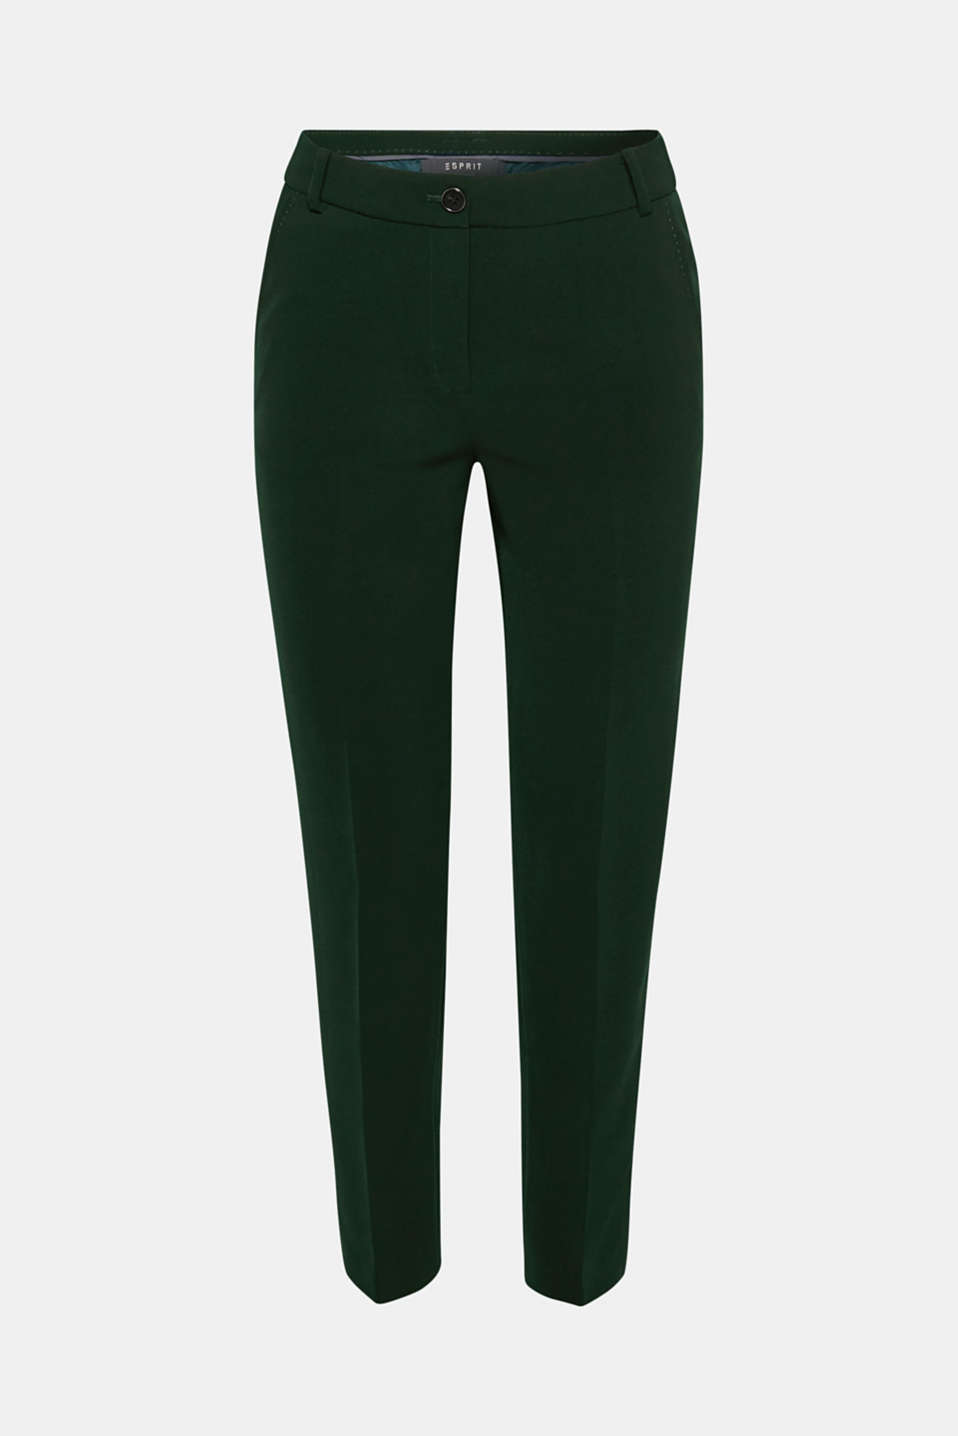 STITCHING mix + match stretch trousers with decorative stitching, DARK TEAL GREEN 2, detail image number 8